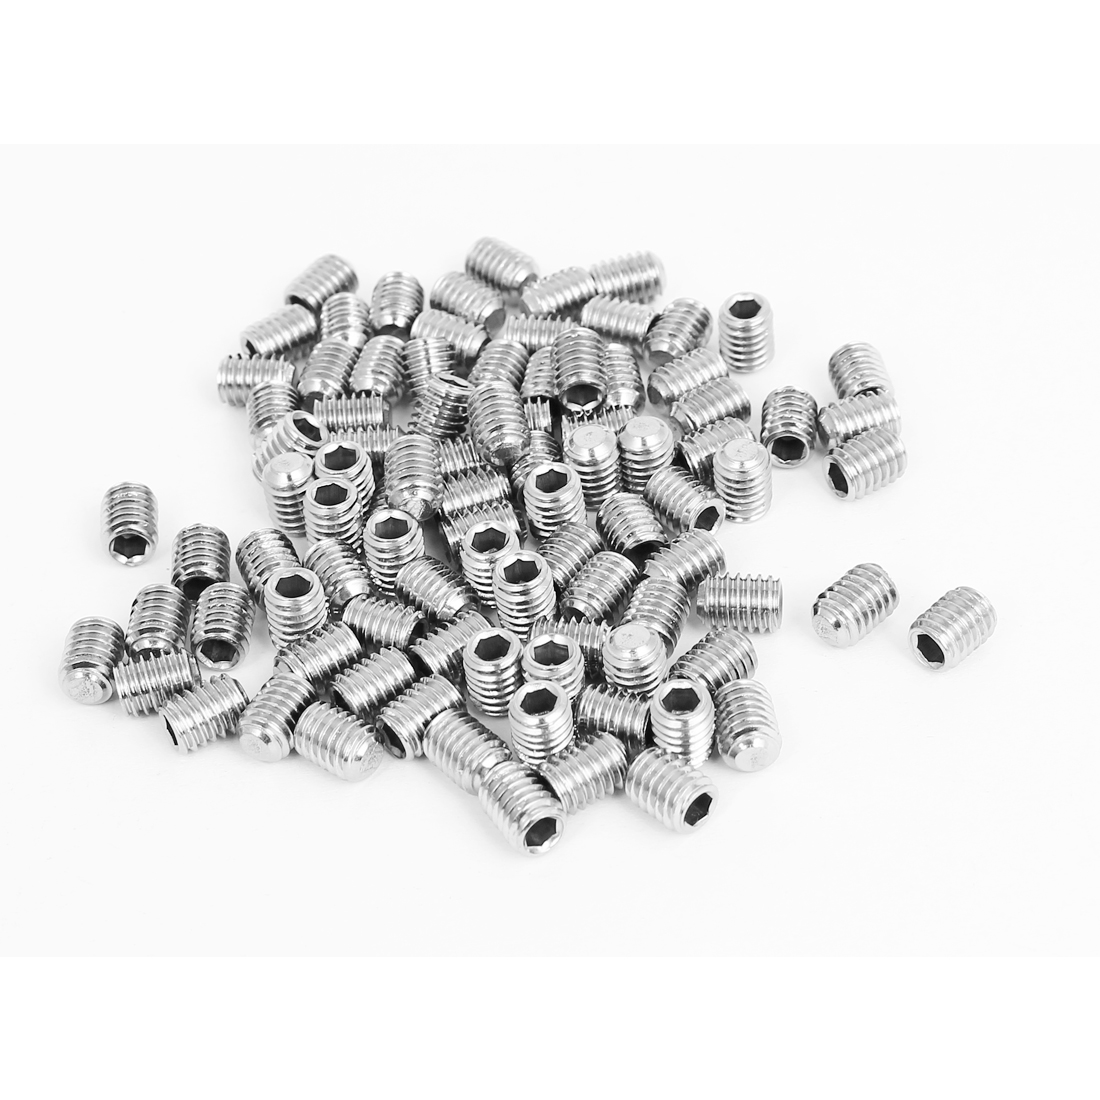 M6x8mm 304 Stainless Steel 1mm Pitch Hex Socket Set Cap Point Grub Screws 100pcs